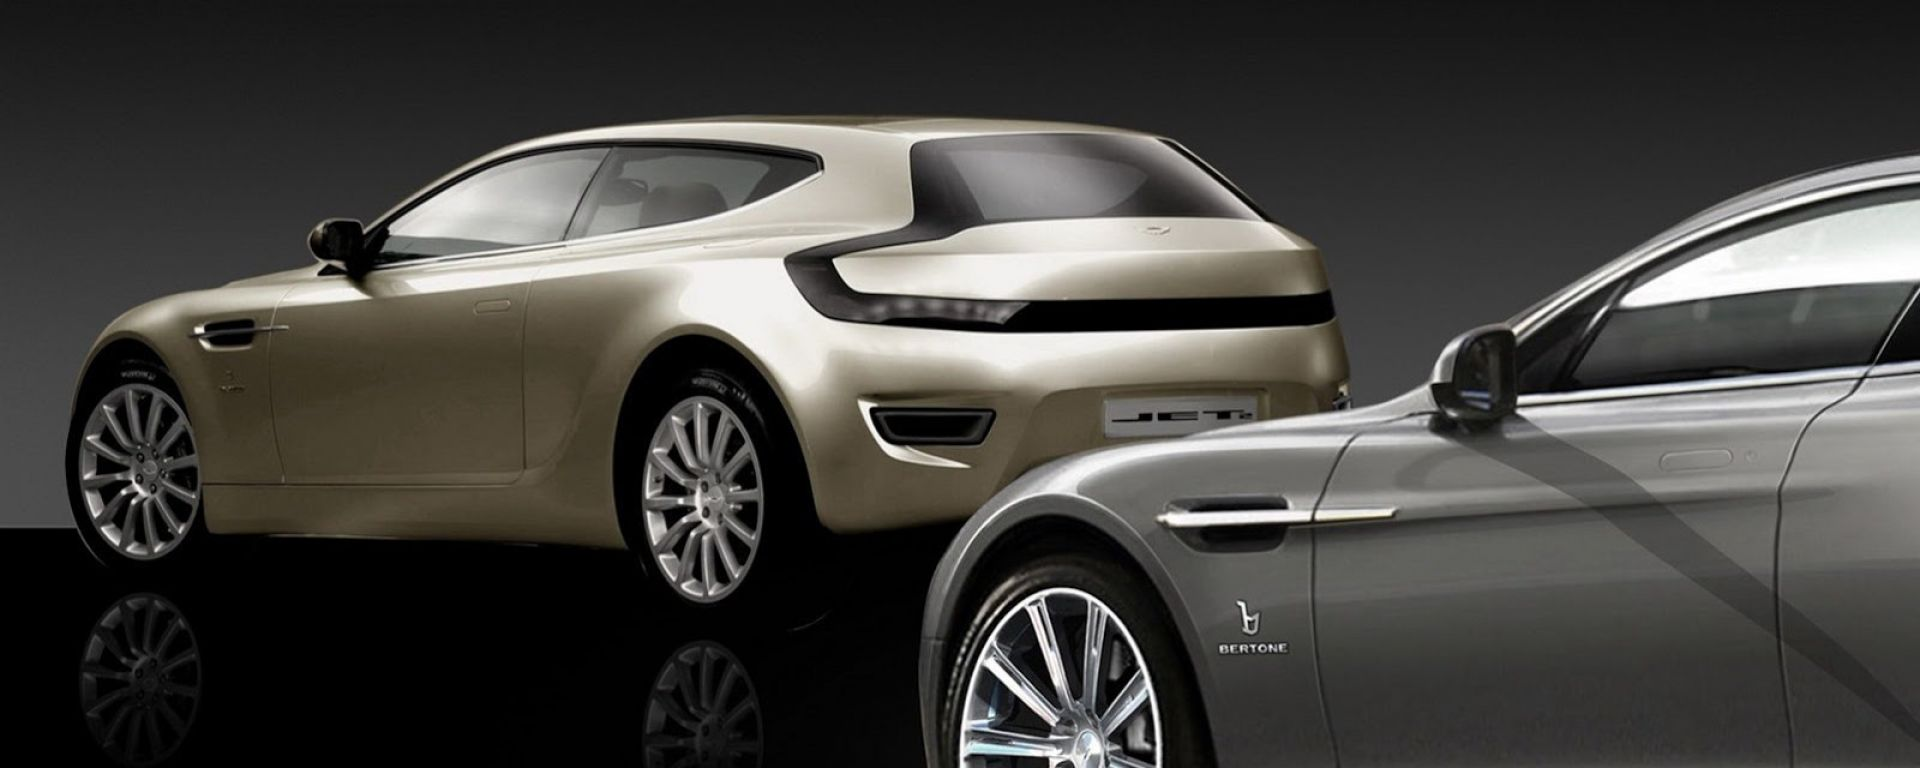 Bertone Jet 2... updated